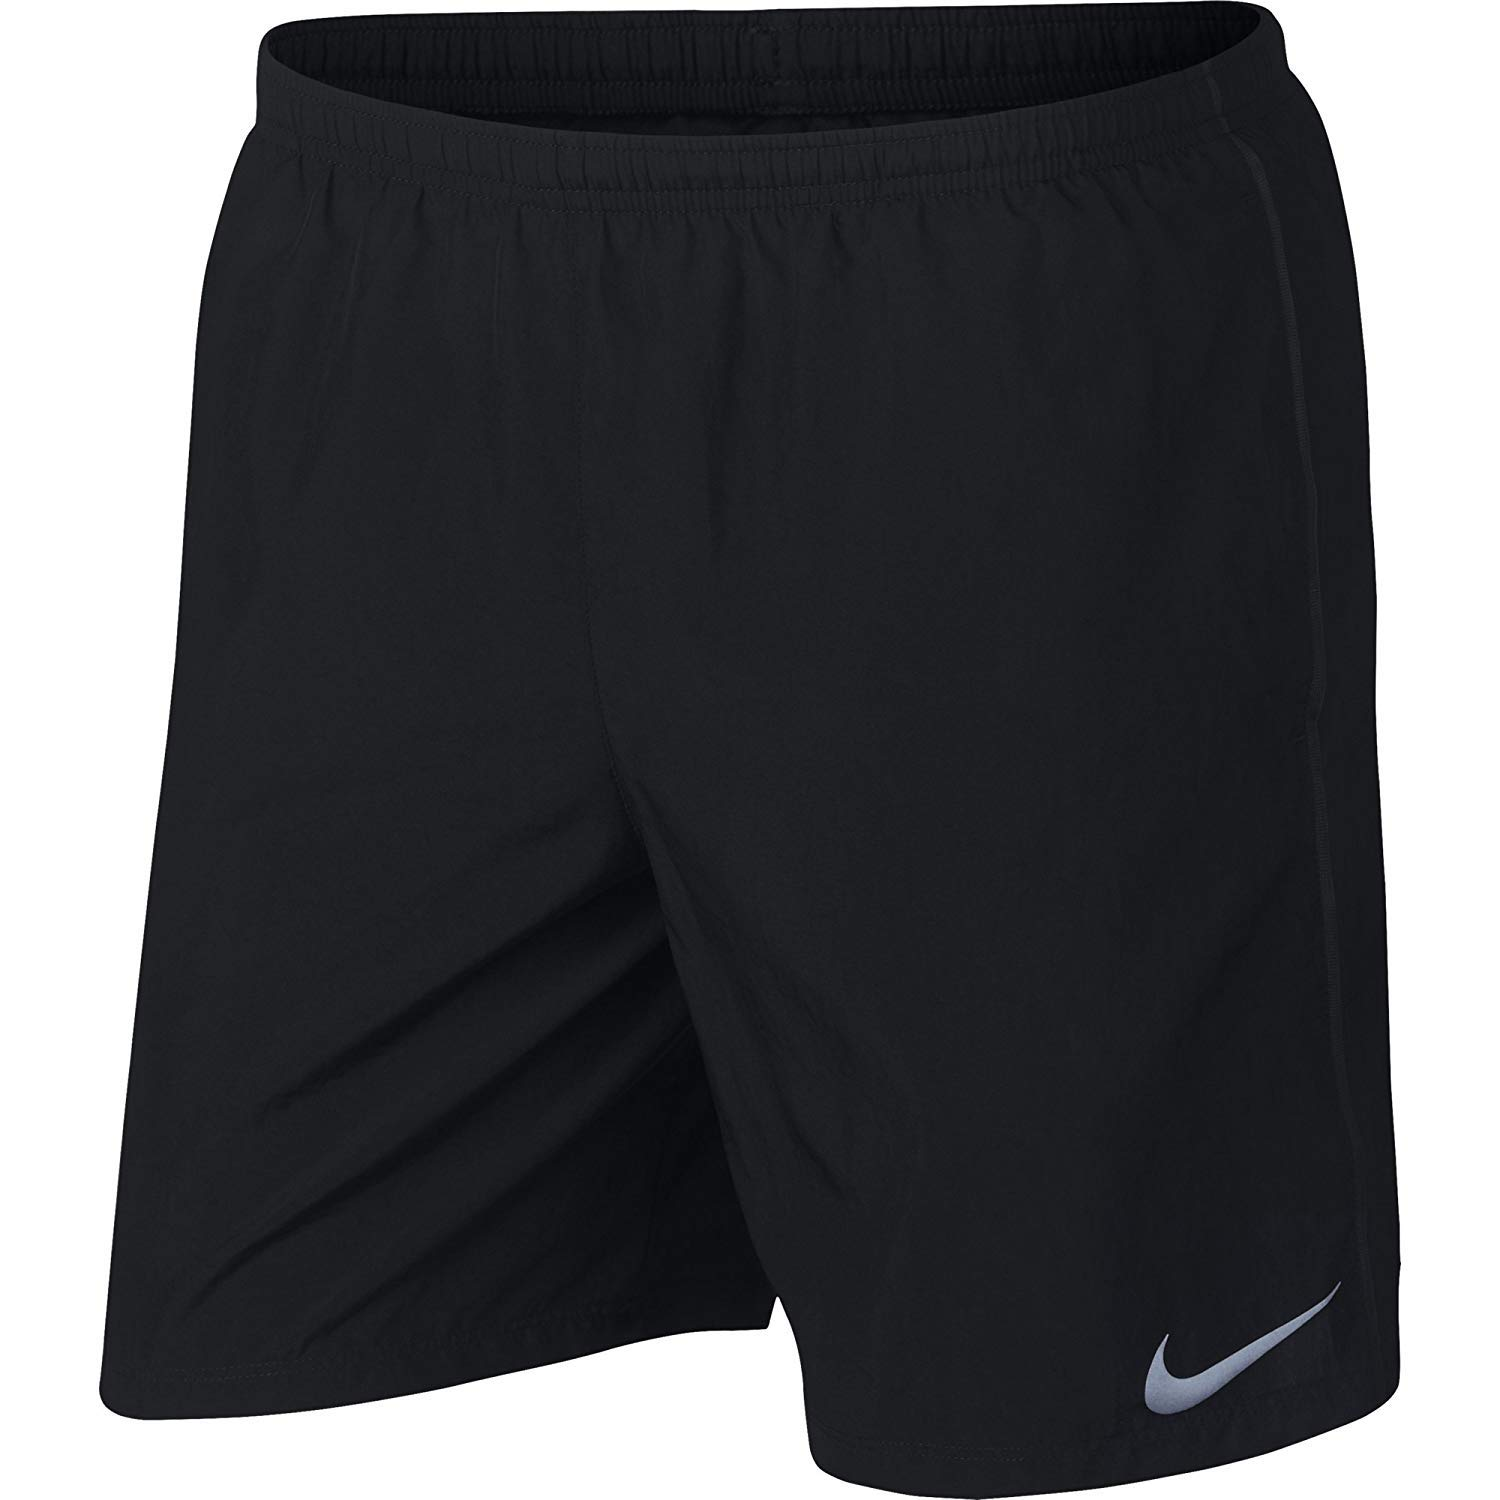 Violet (Burgundy Crush rouge Crush 652) Nike, Short De Sport Homme 52 (Taille fabricant  X-Large)